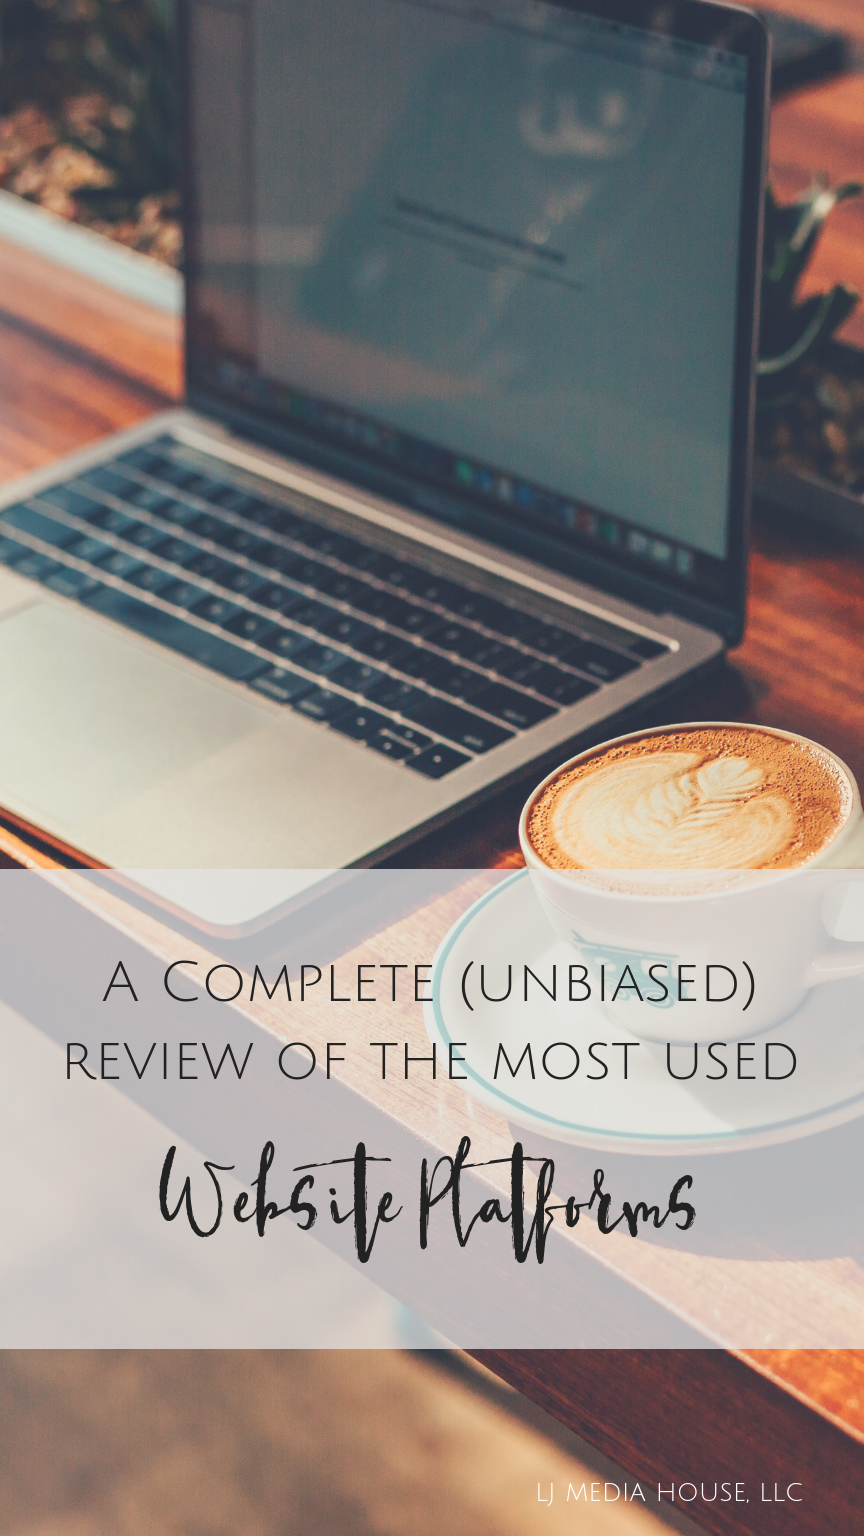 Complete Review of the most used website platforms